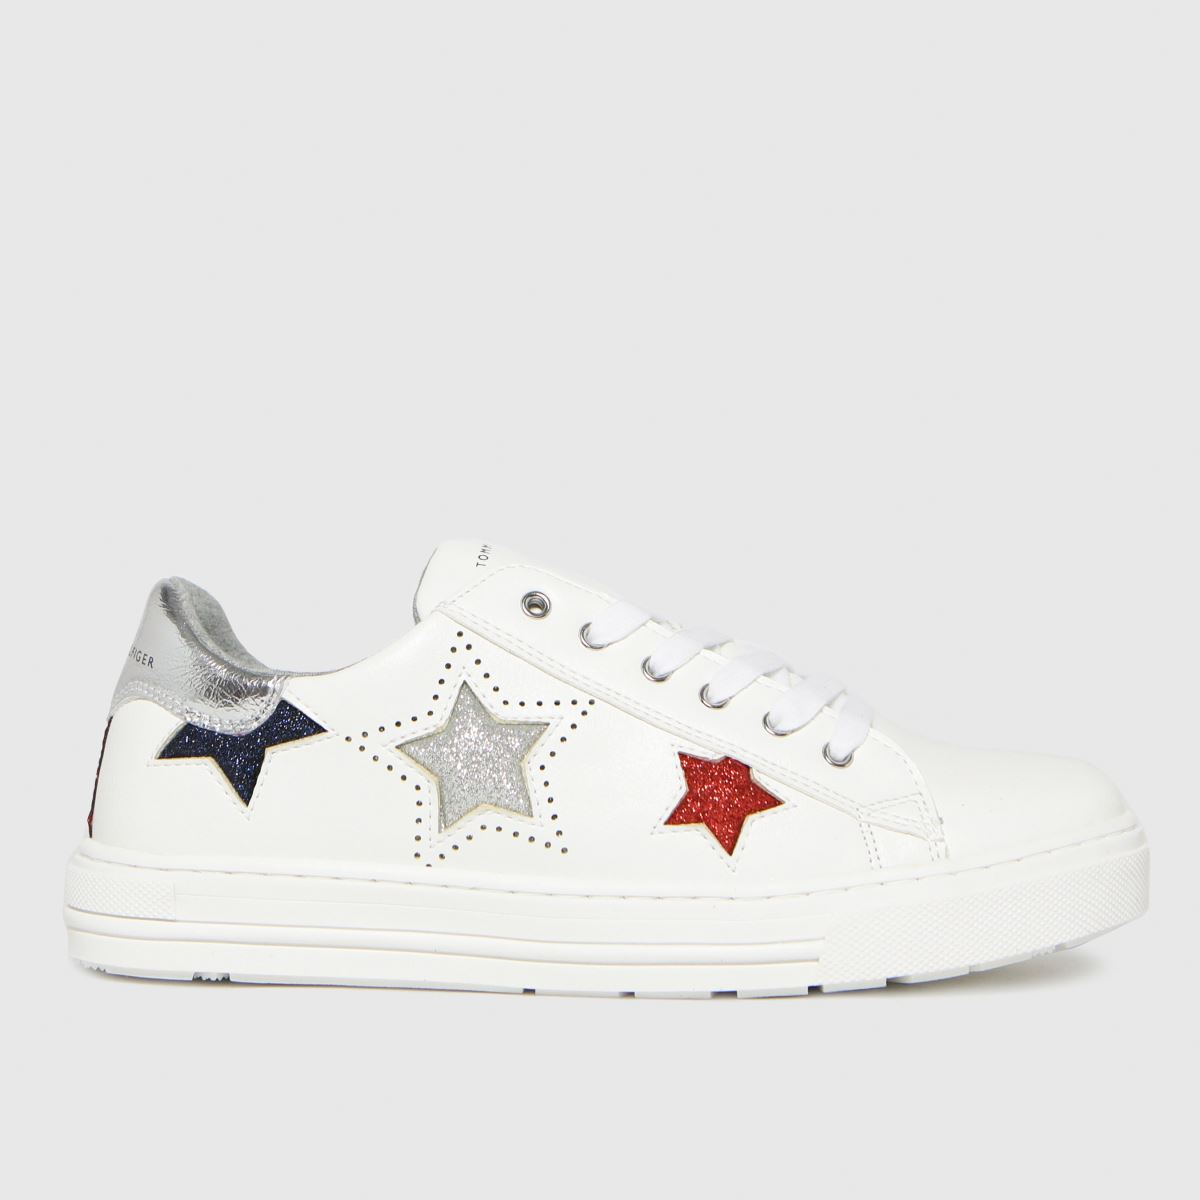 Tommy Hilfiger White & Silver Low Cut Lace-up Sneaker Trainers Y